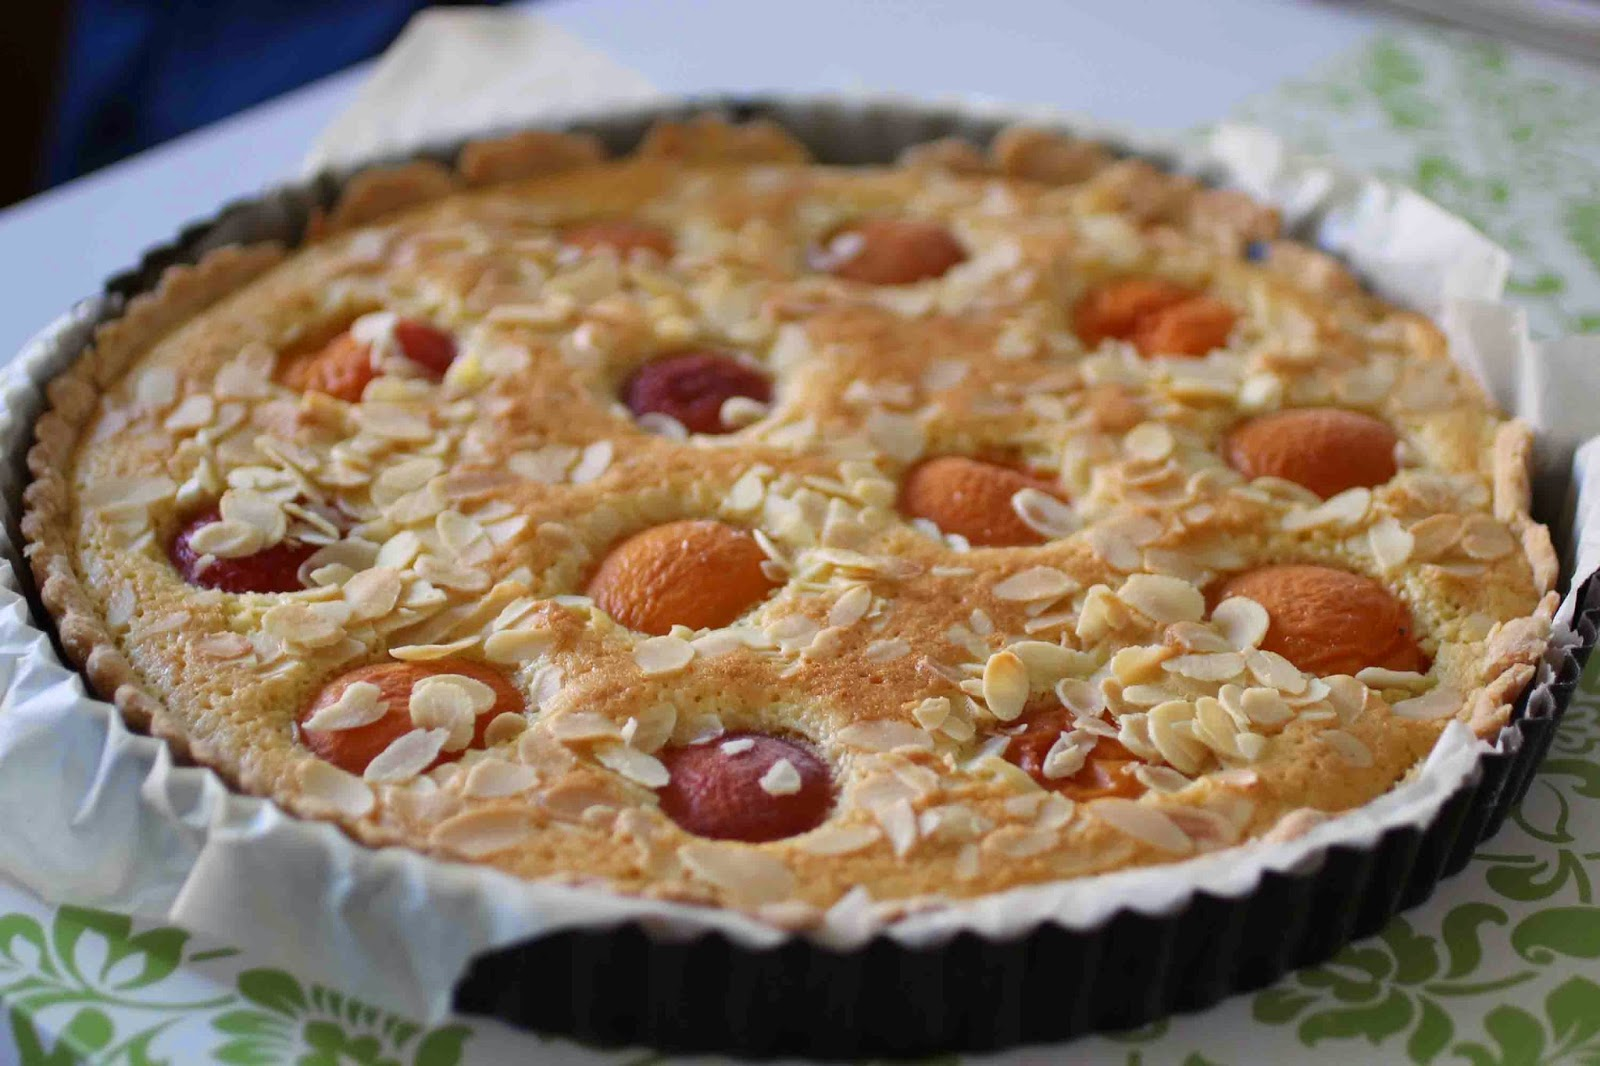 http://camilleenchocolat.blogspot.fr/2014/07/tarte-amandine-aux-abricots.html